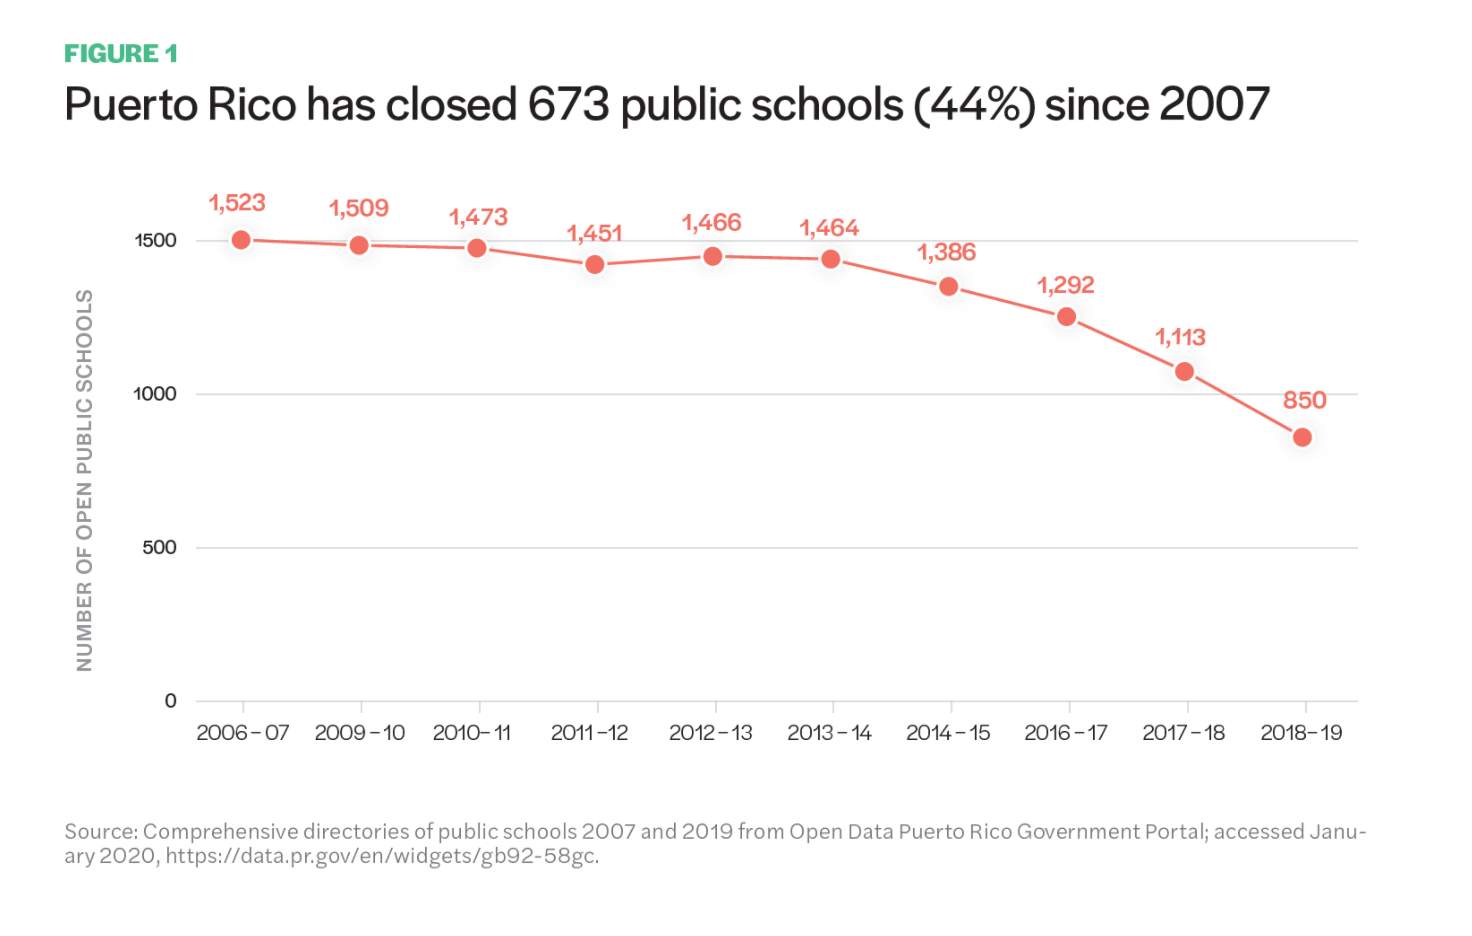 Figure 1 includes a graph showcasing how Puerto Rico has closed 673 public schools (44%) since 2007